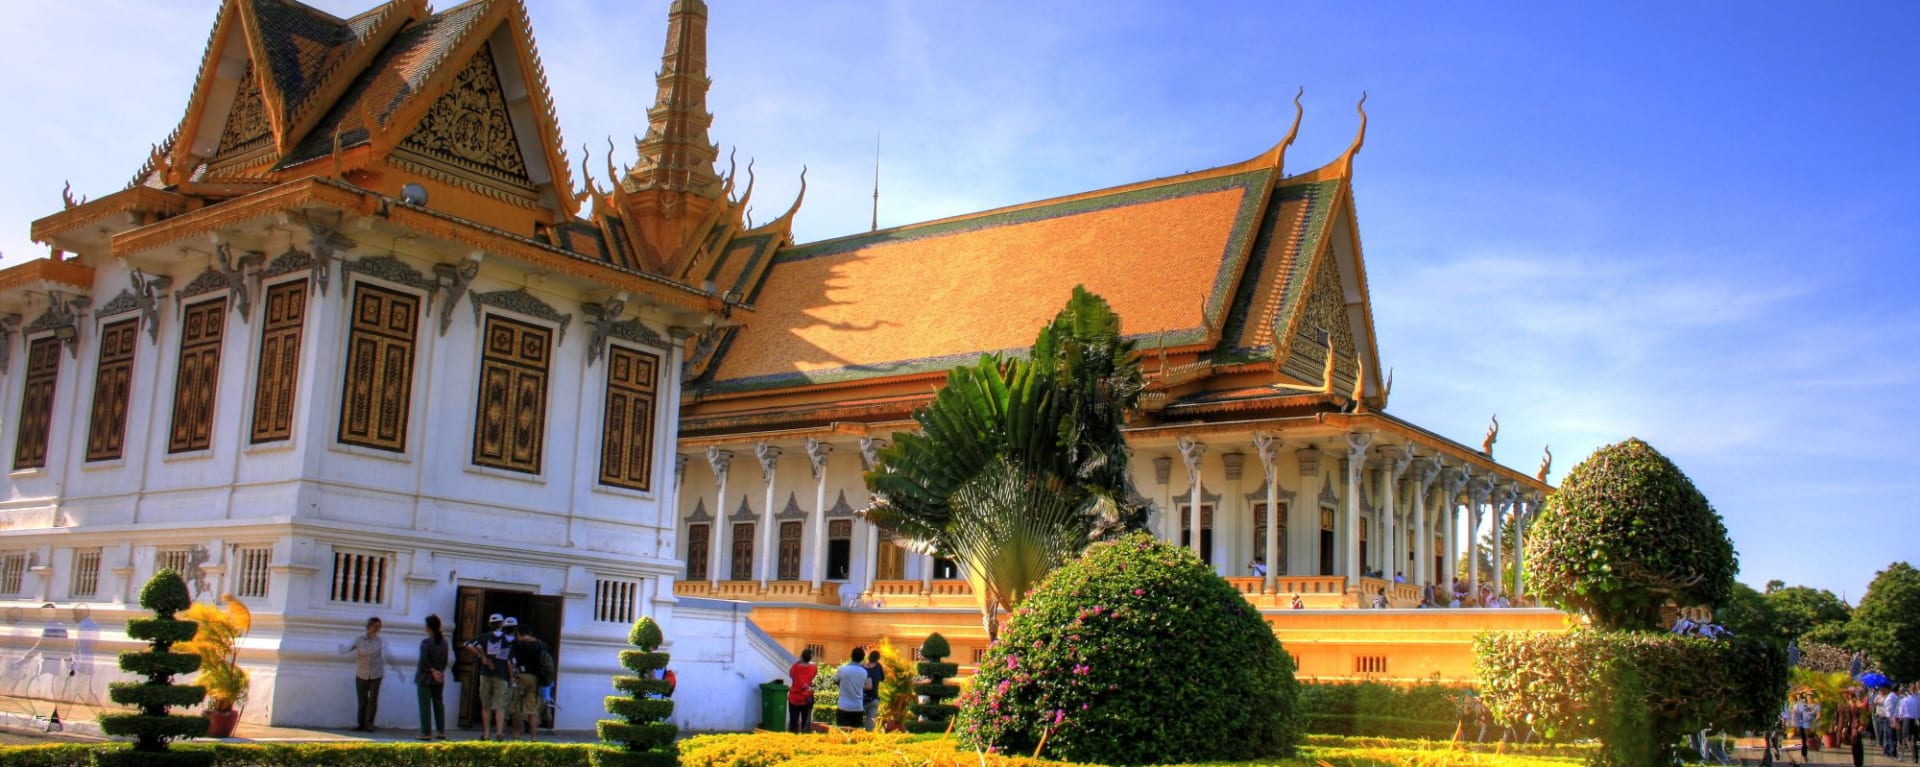 Good Morning Phnom Penh: Phnom Penh Royal Palace